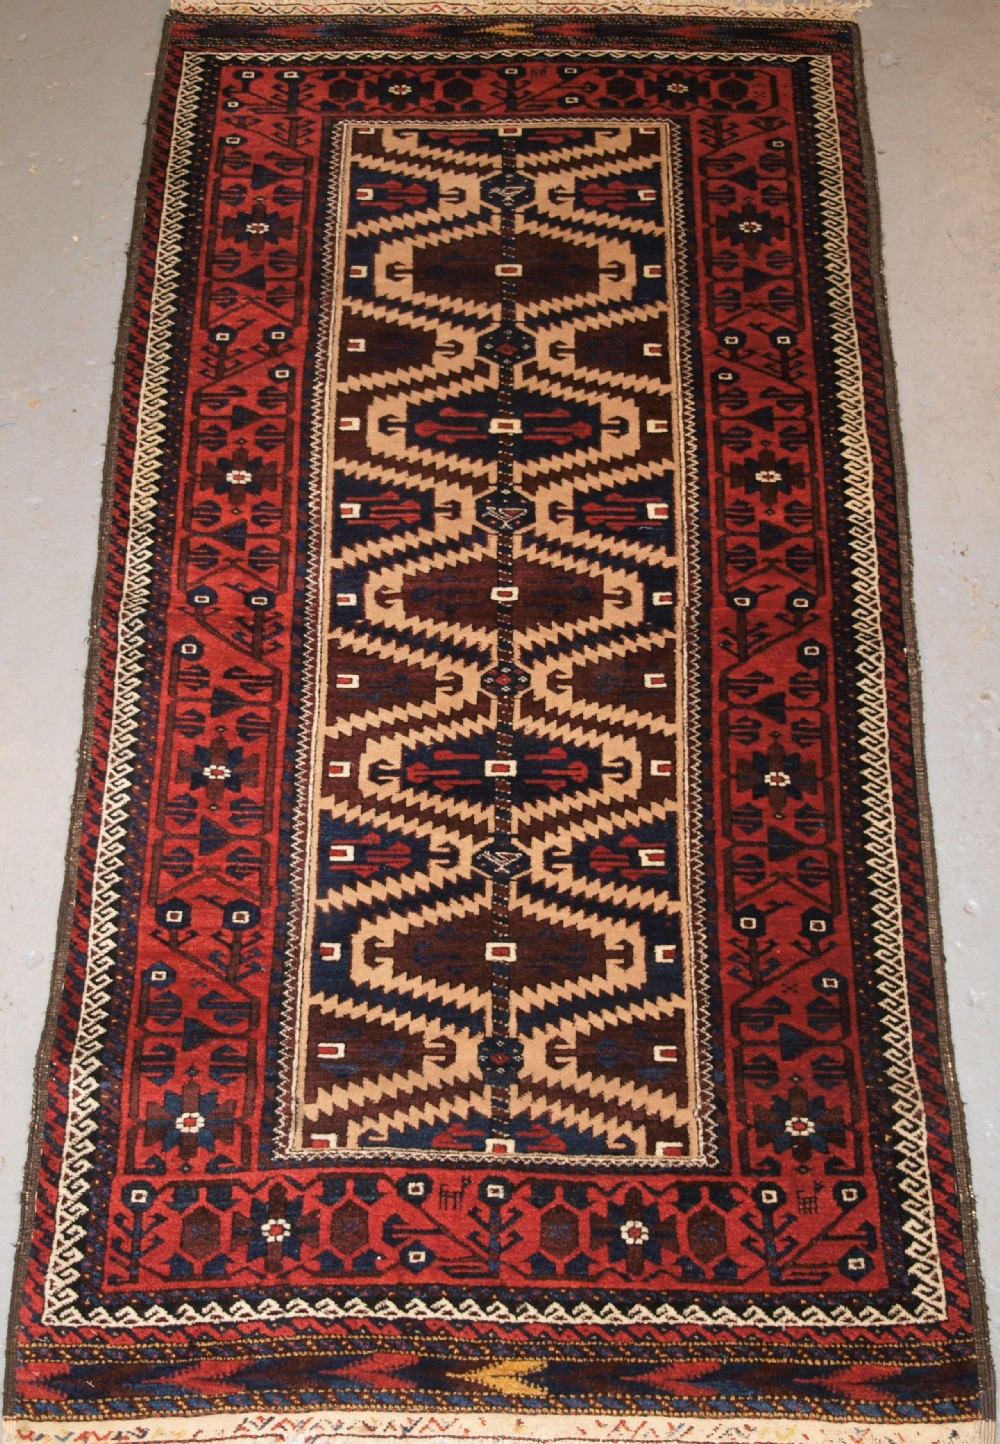 antique baluch rug khorassan region north east persia late 19th century